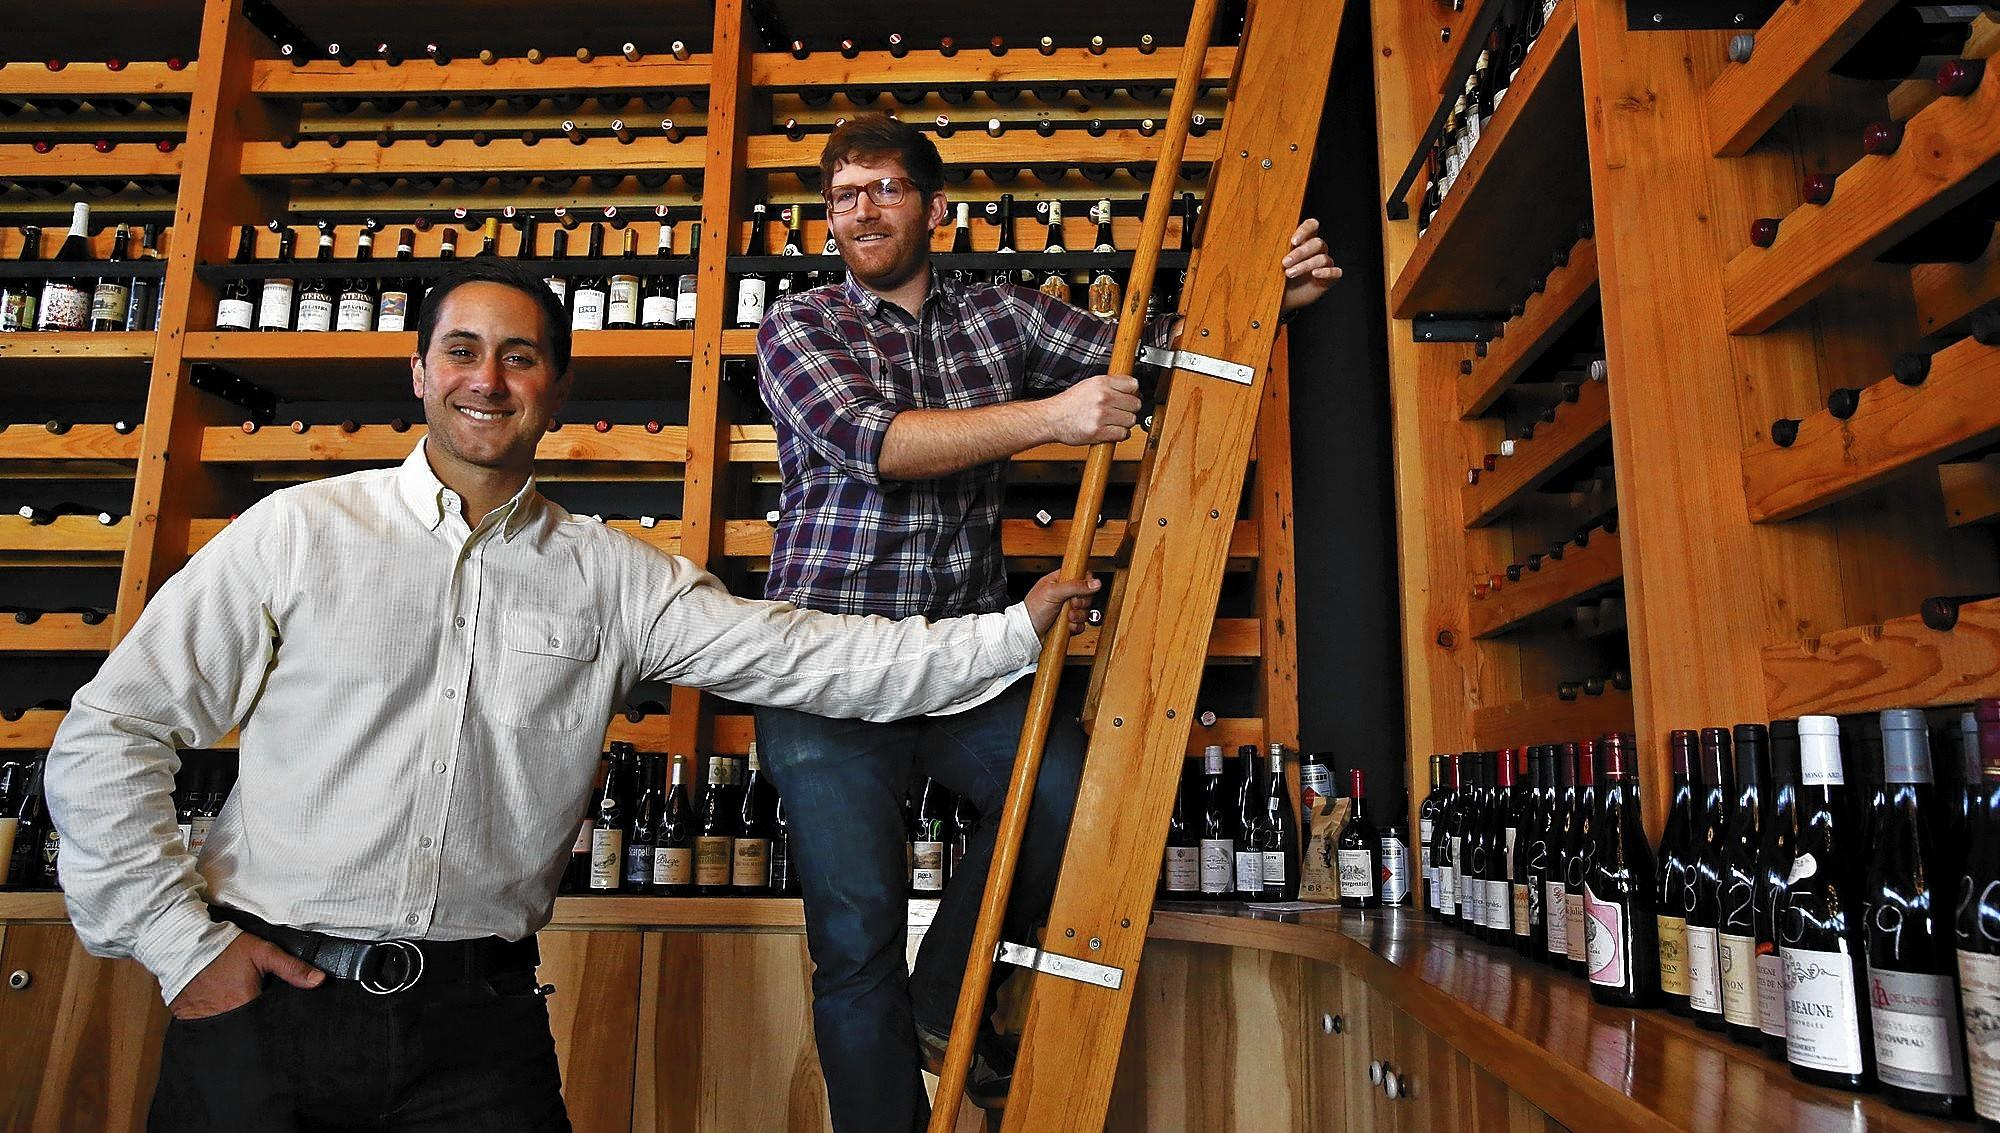 Brian McClintic, left, and Eric Railsbackpose at their wine shop Les Marchands in Santa Barbara.